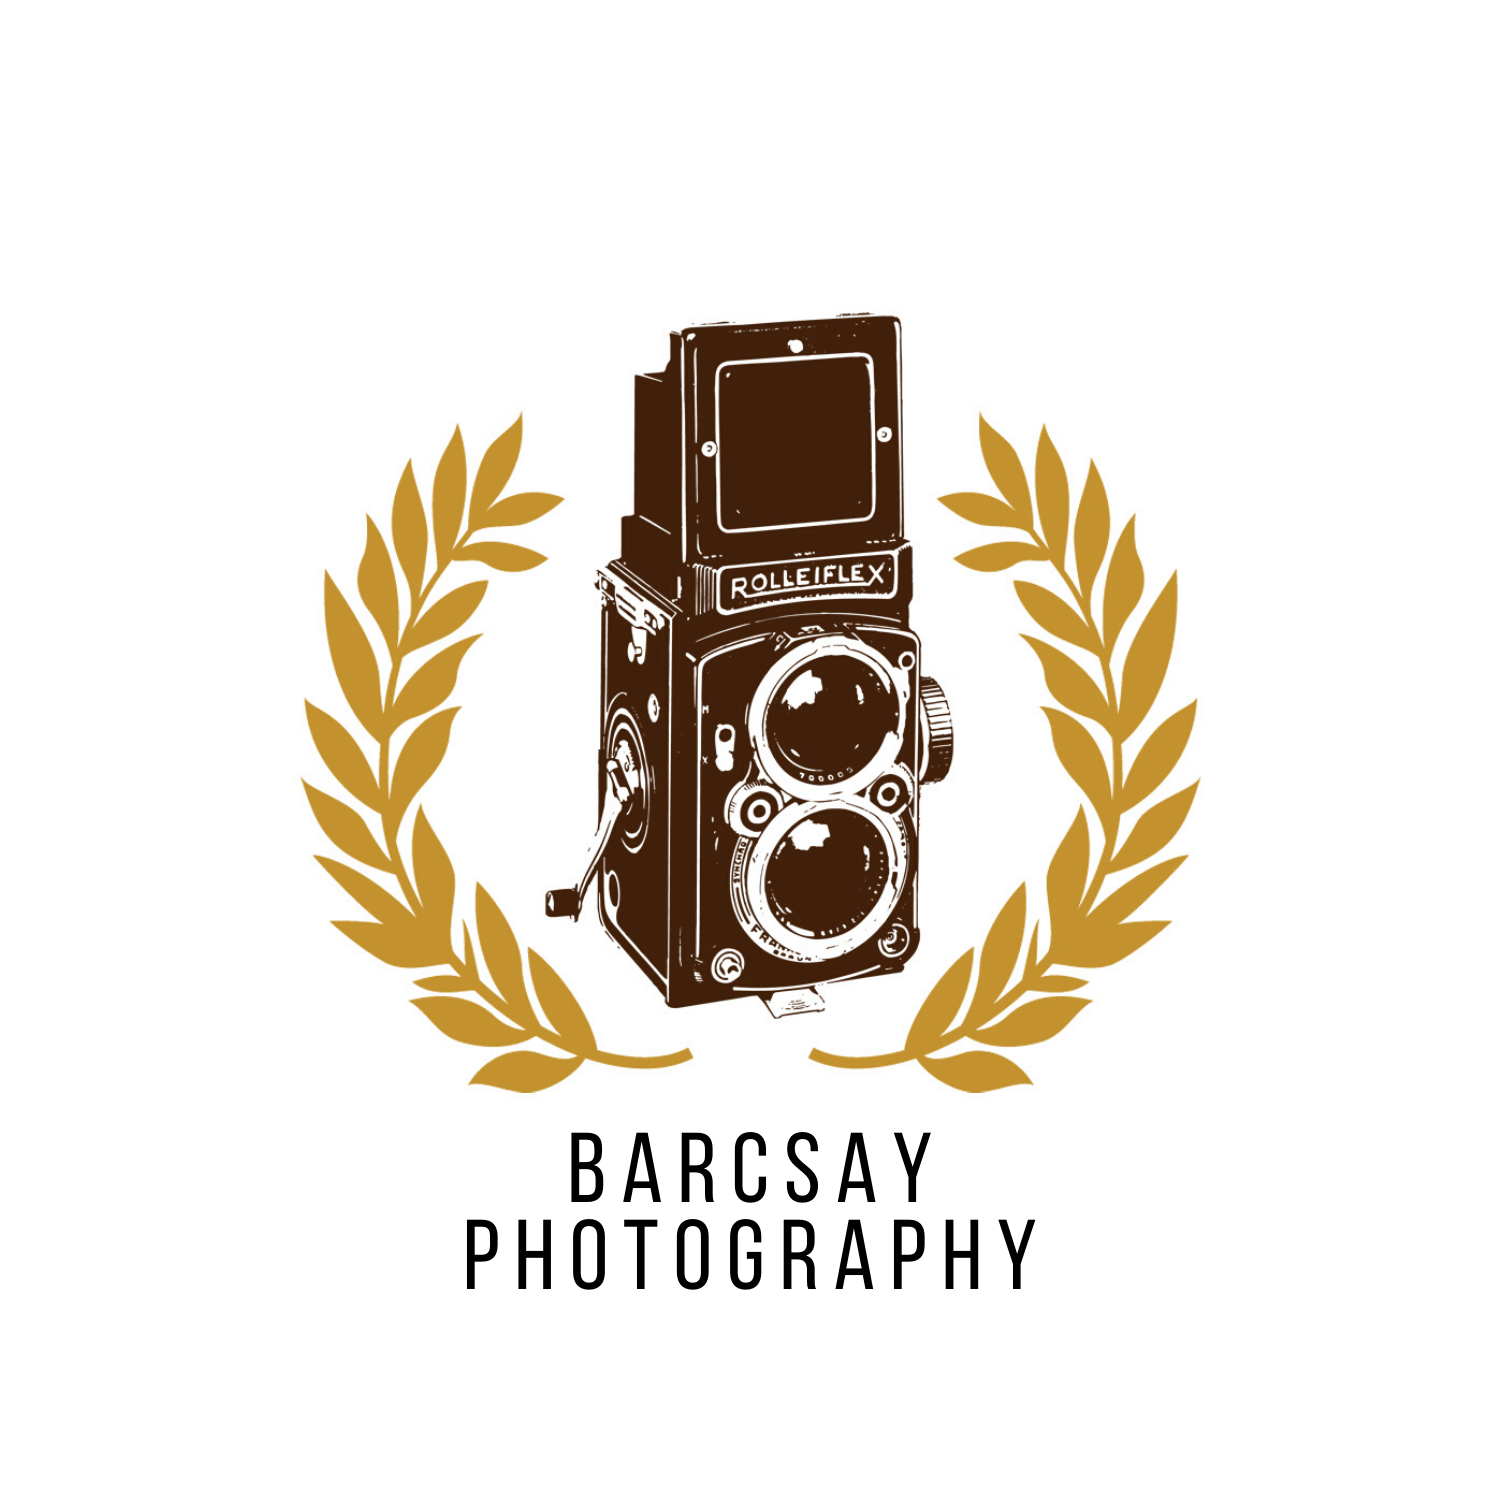 Copy of Barcsay photography